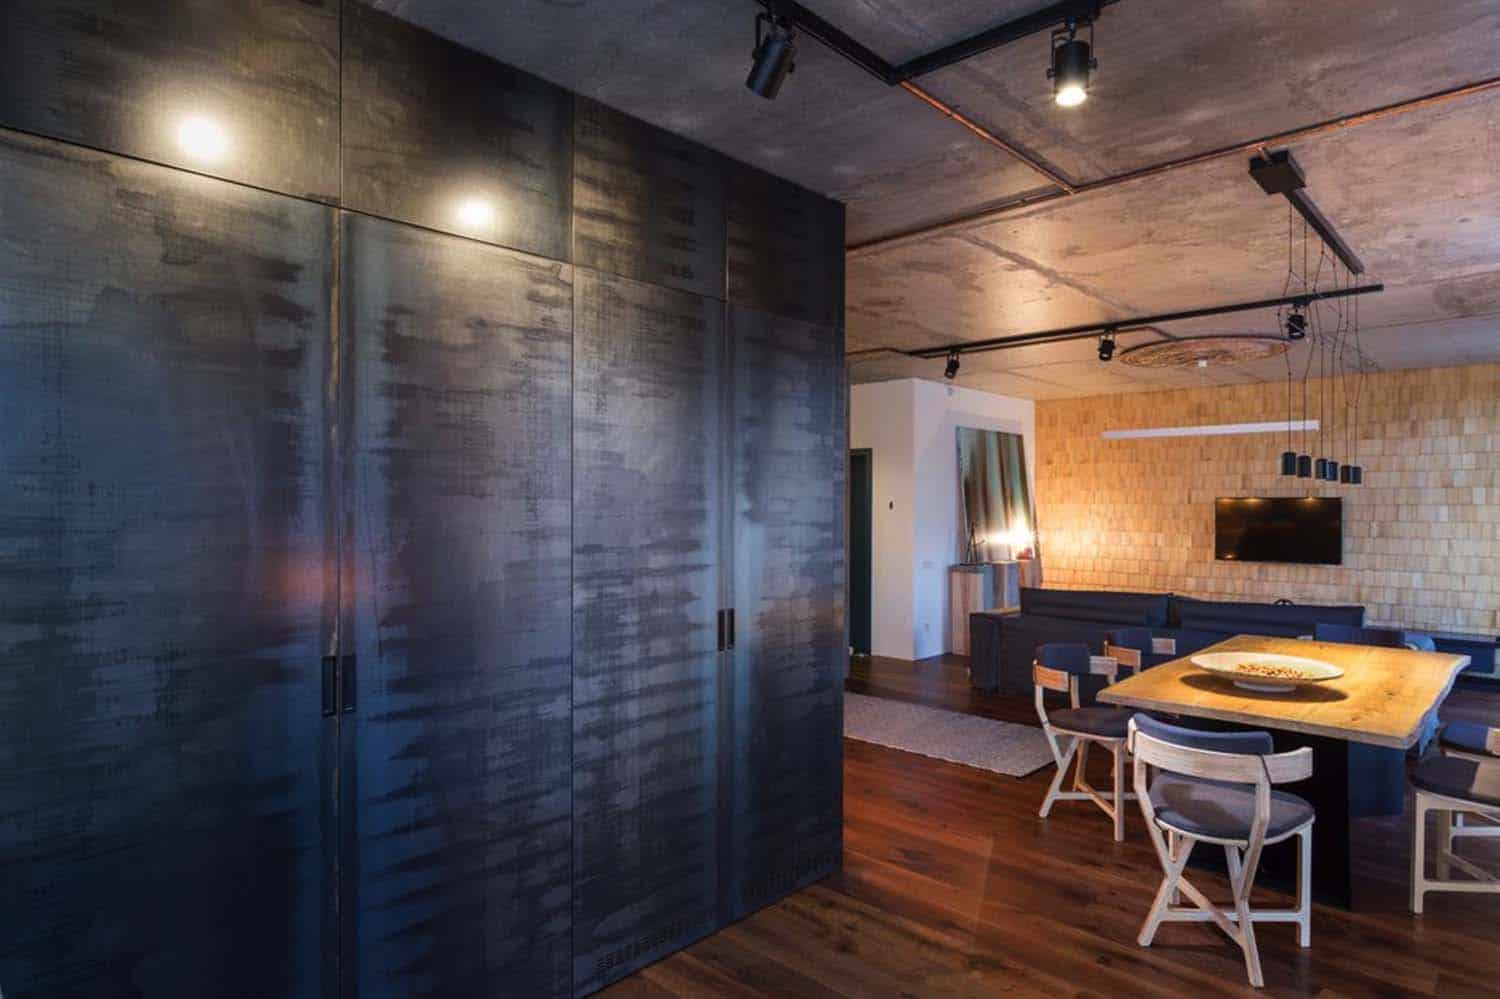 Two-Roomed Apartment-Svoya Studio-10-1 Kindesign